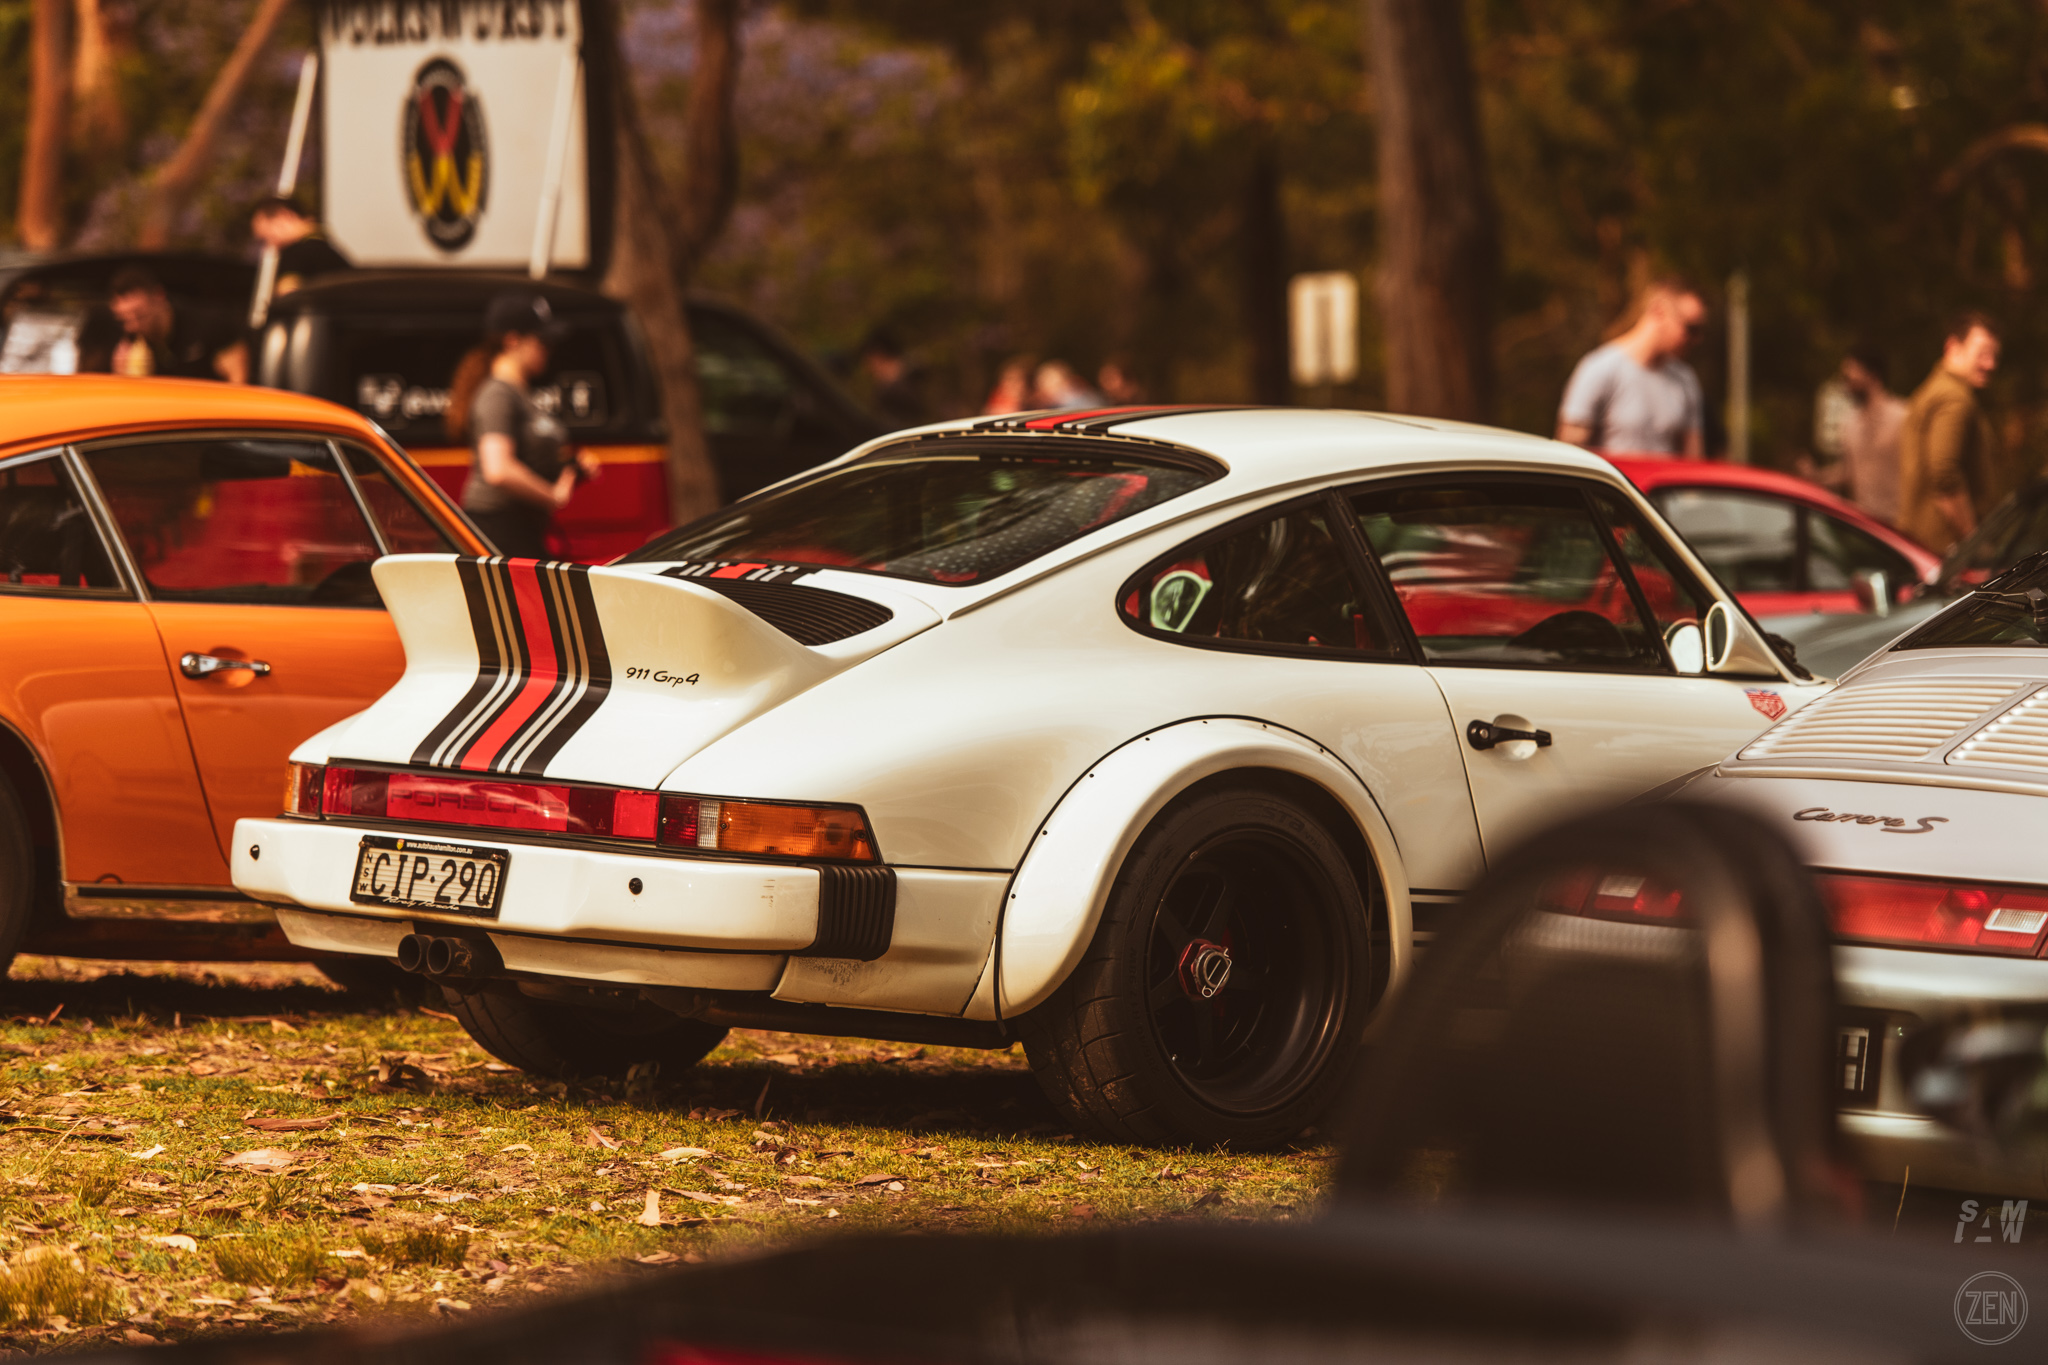 2019-12-08 - Porsches & Coffee 136